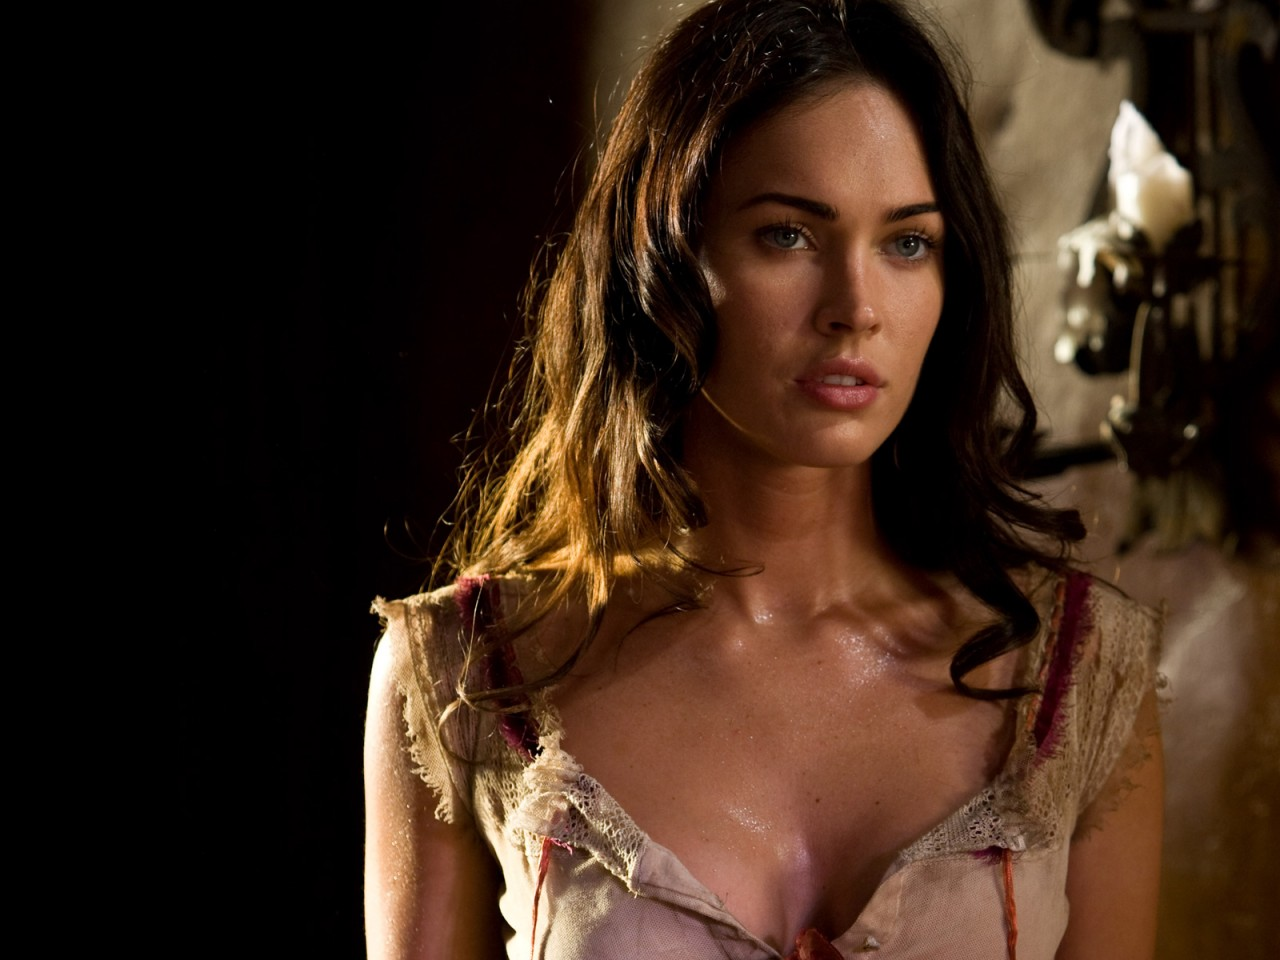 Megan Fox Jonah Hex Wallpaper